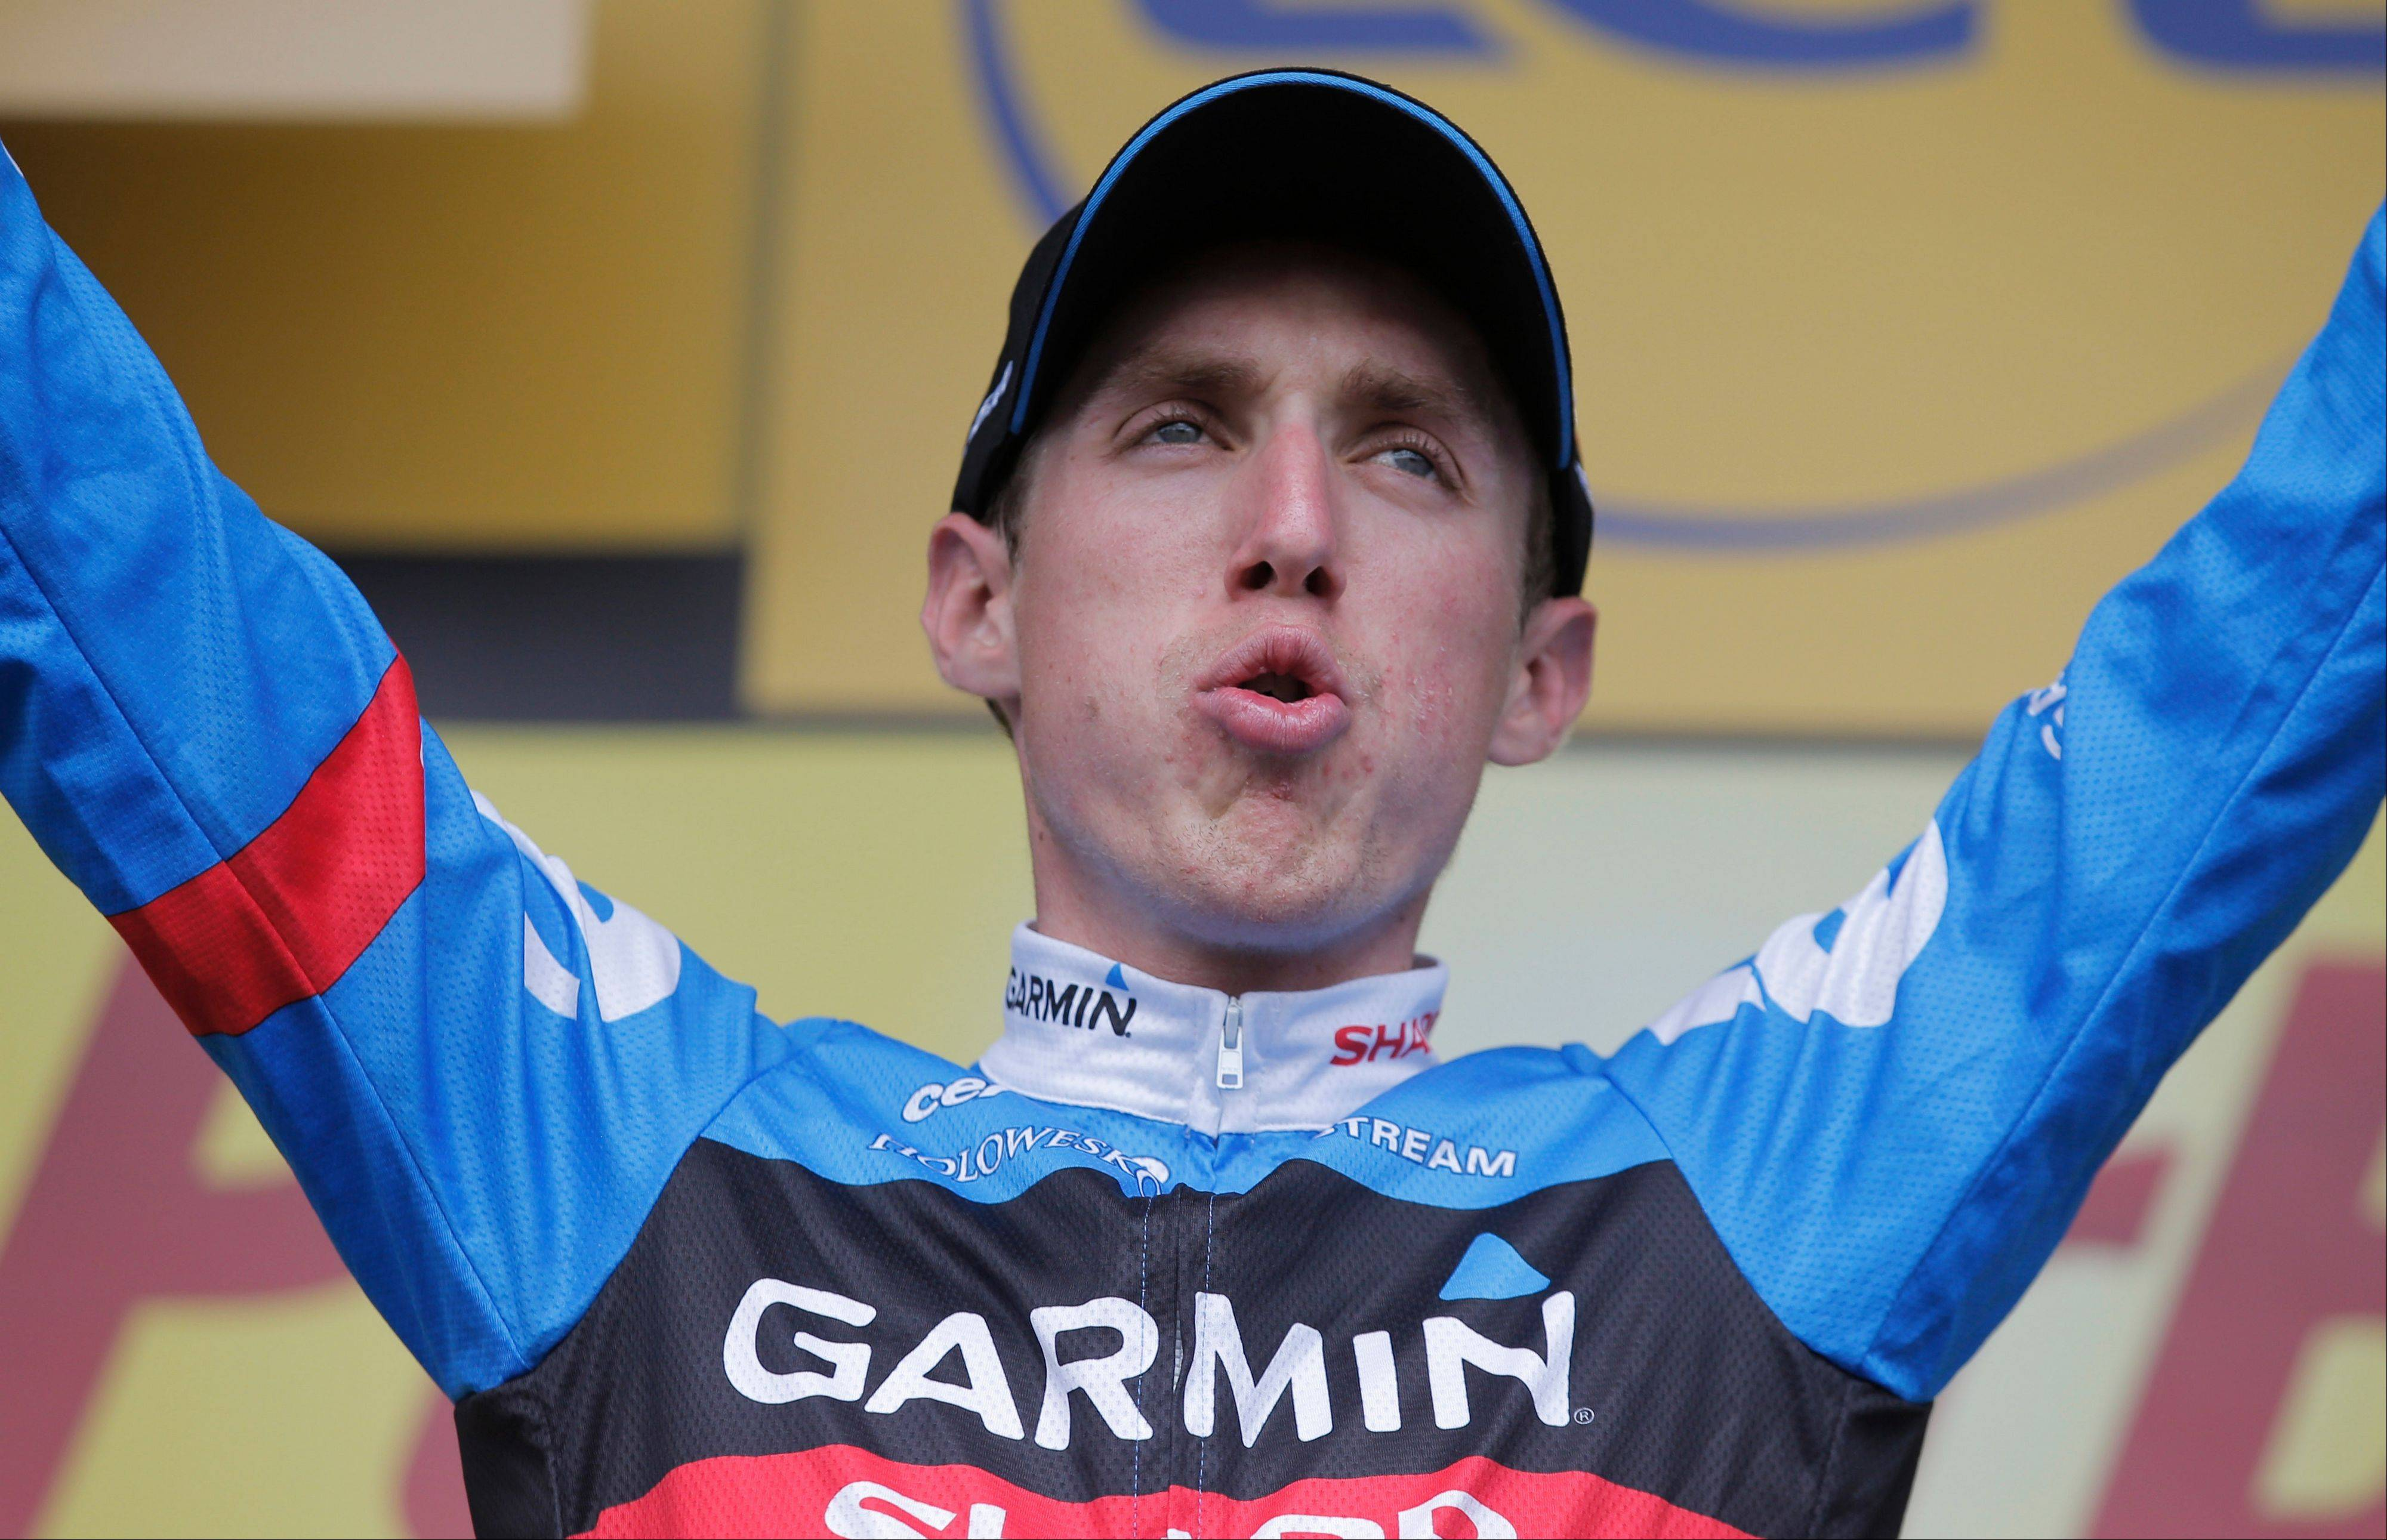 Daniel Martin of Ireland celebrates on the podium after the ninth stage of the Tour de France on Sunday.